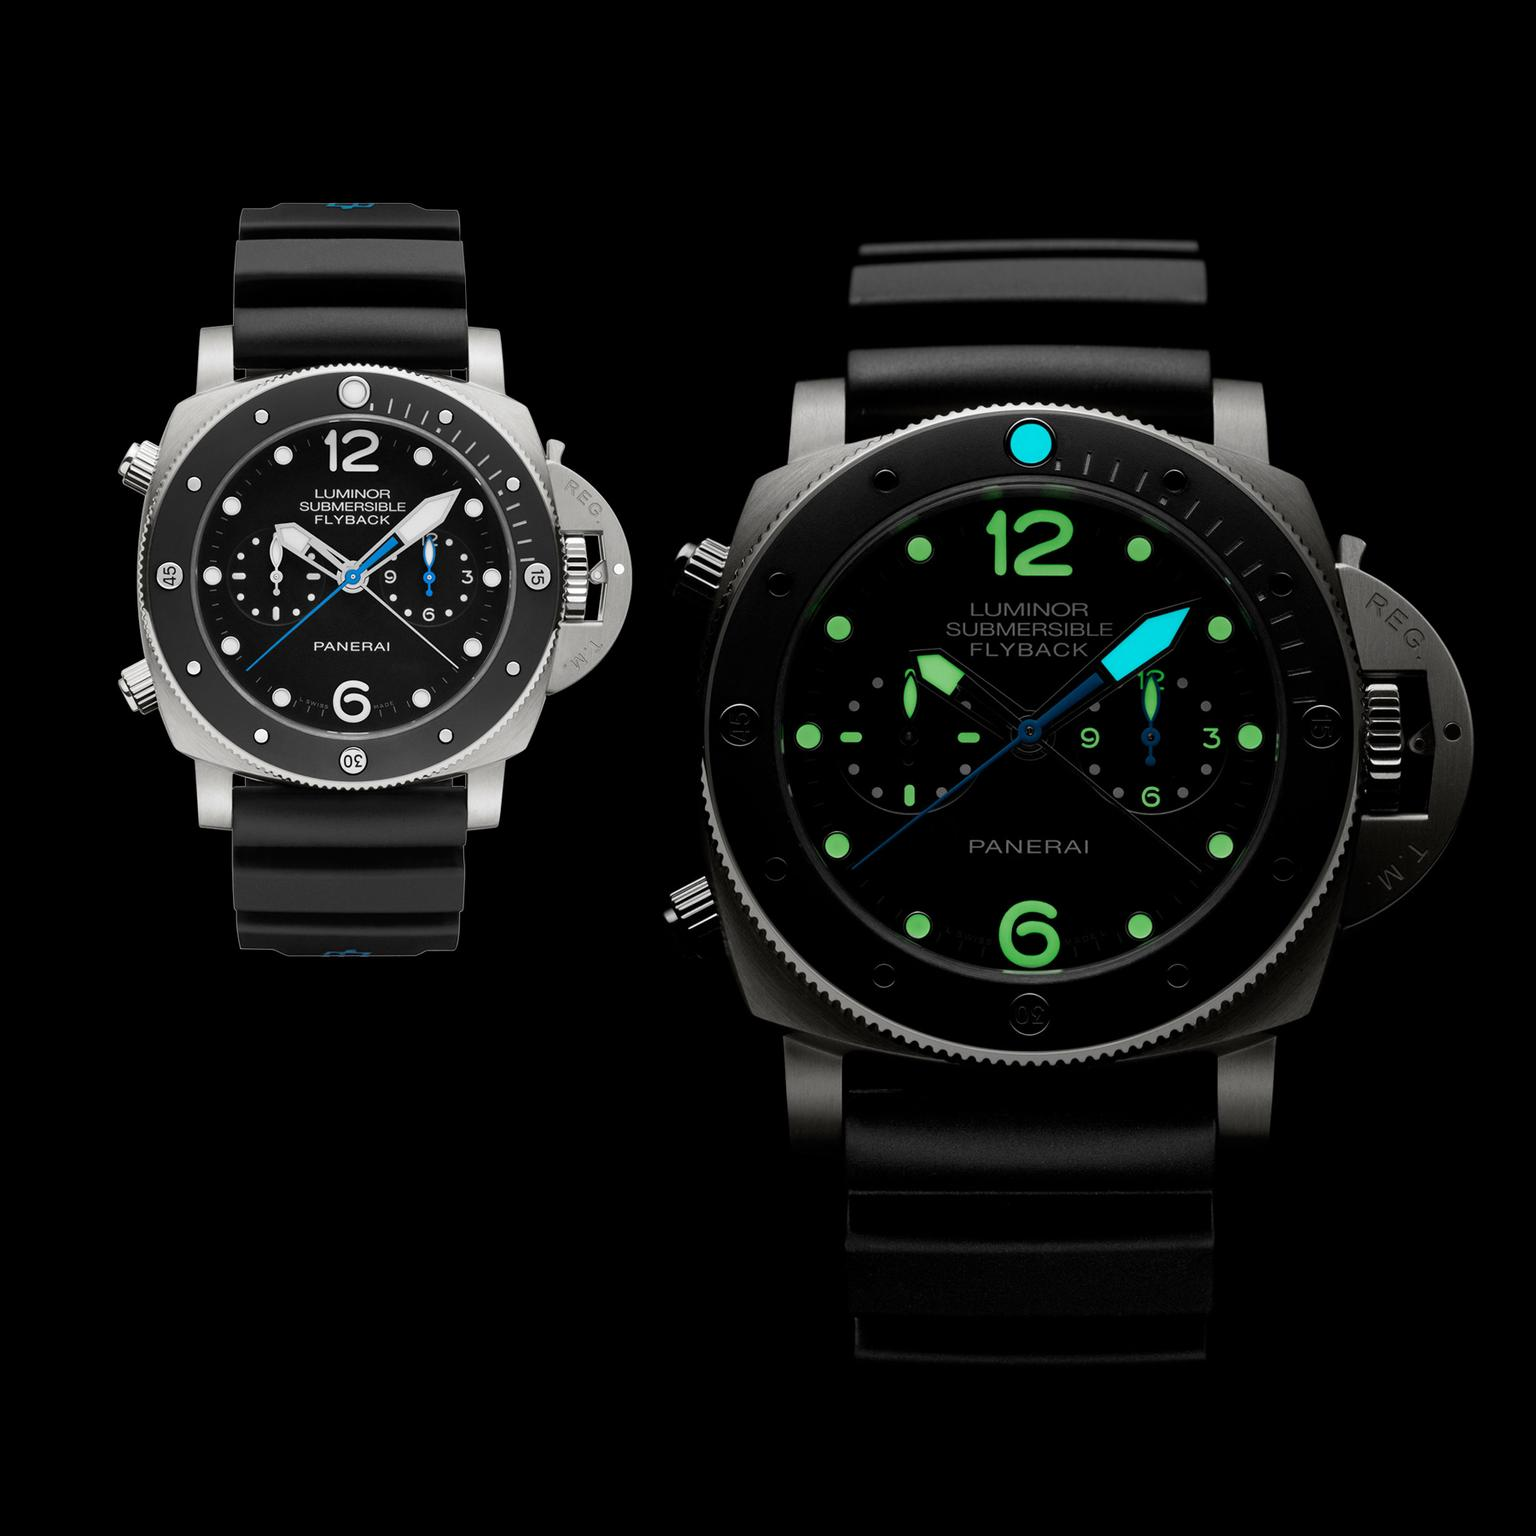 Panerai Luminor 1950 Submersible watch